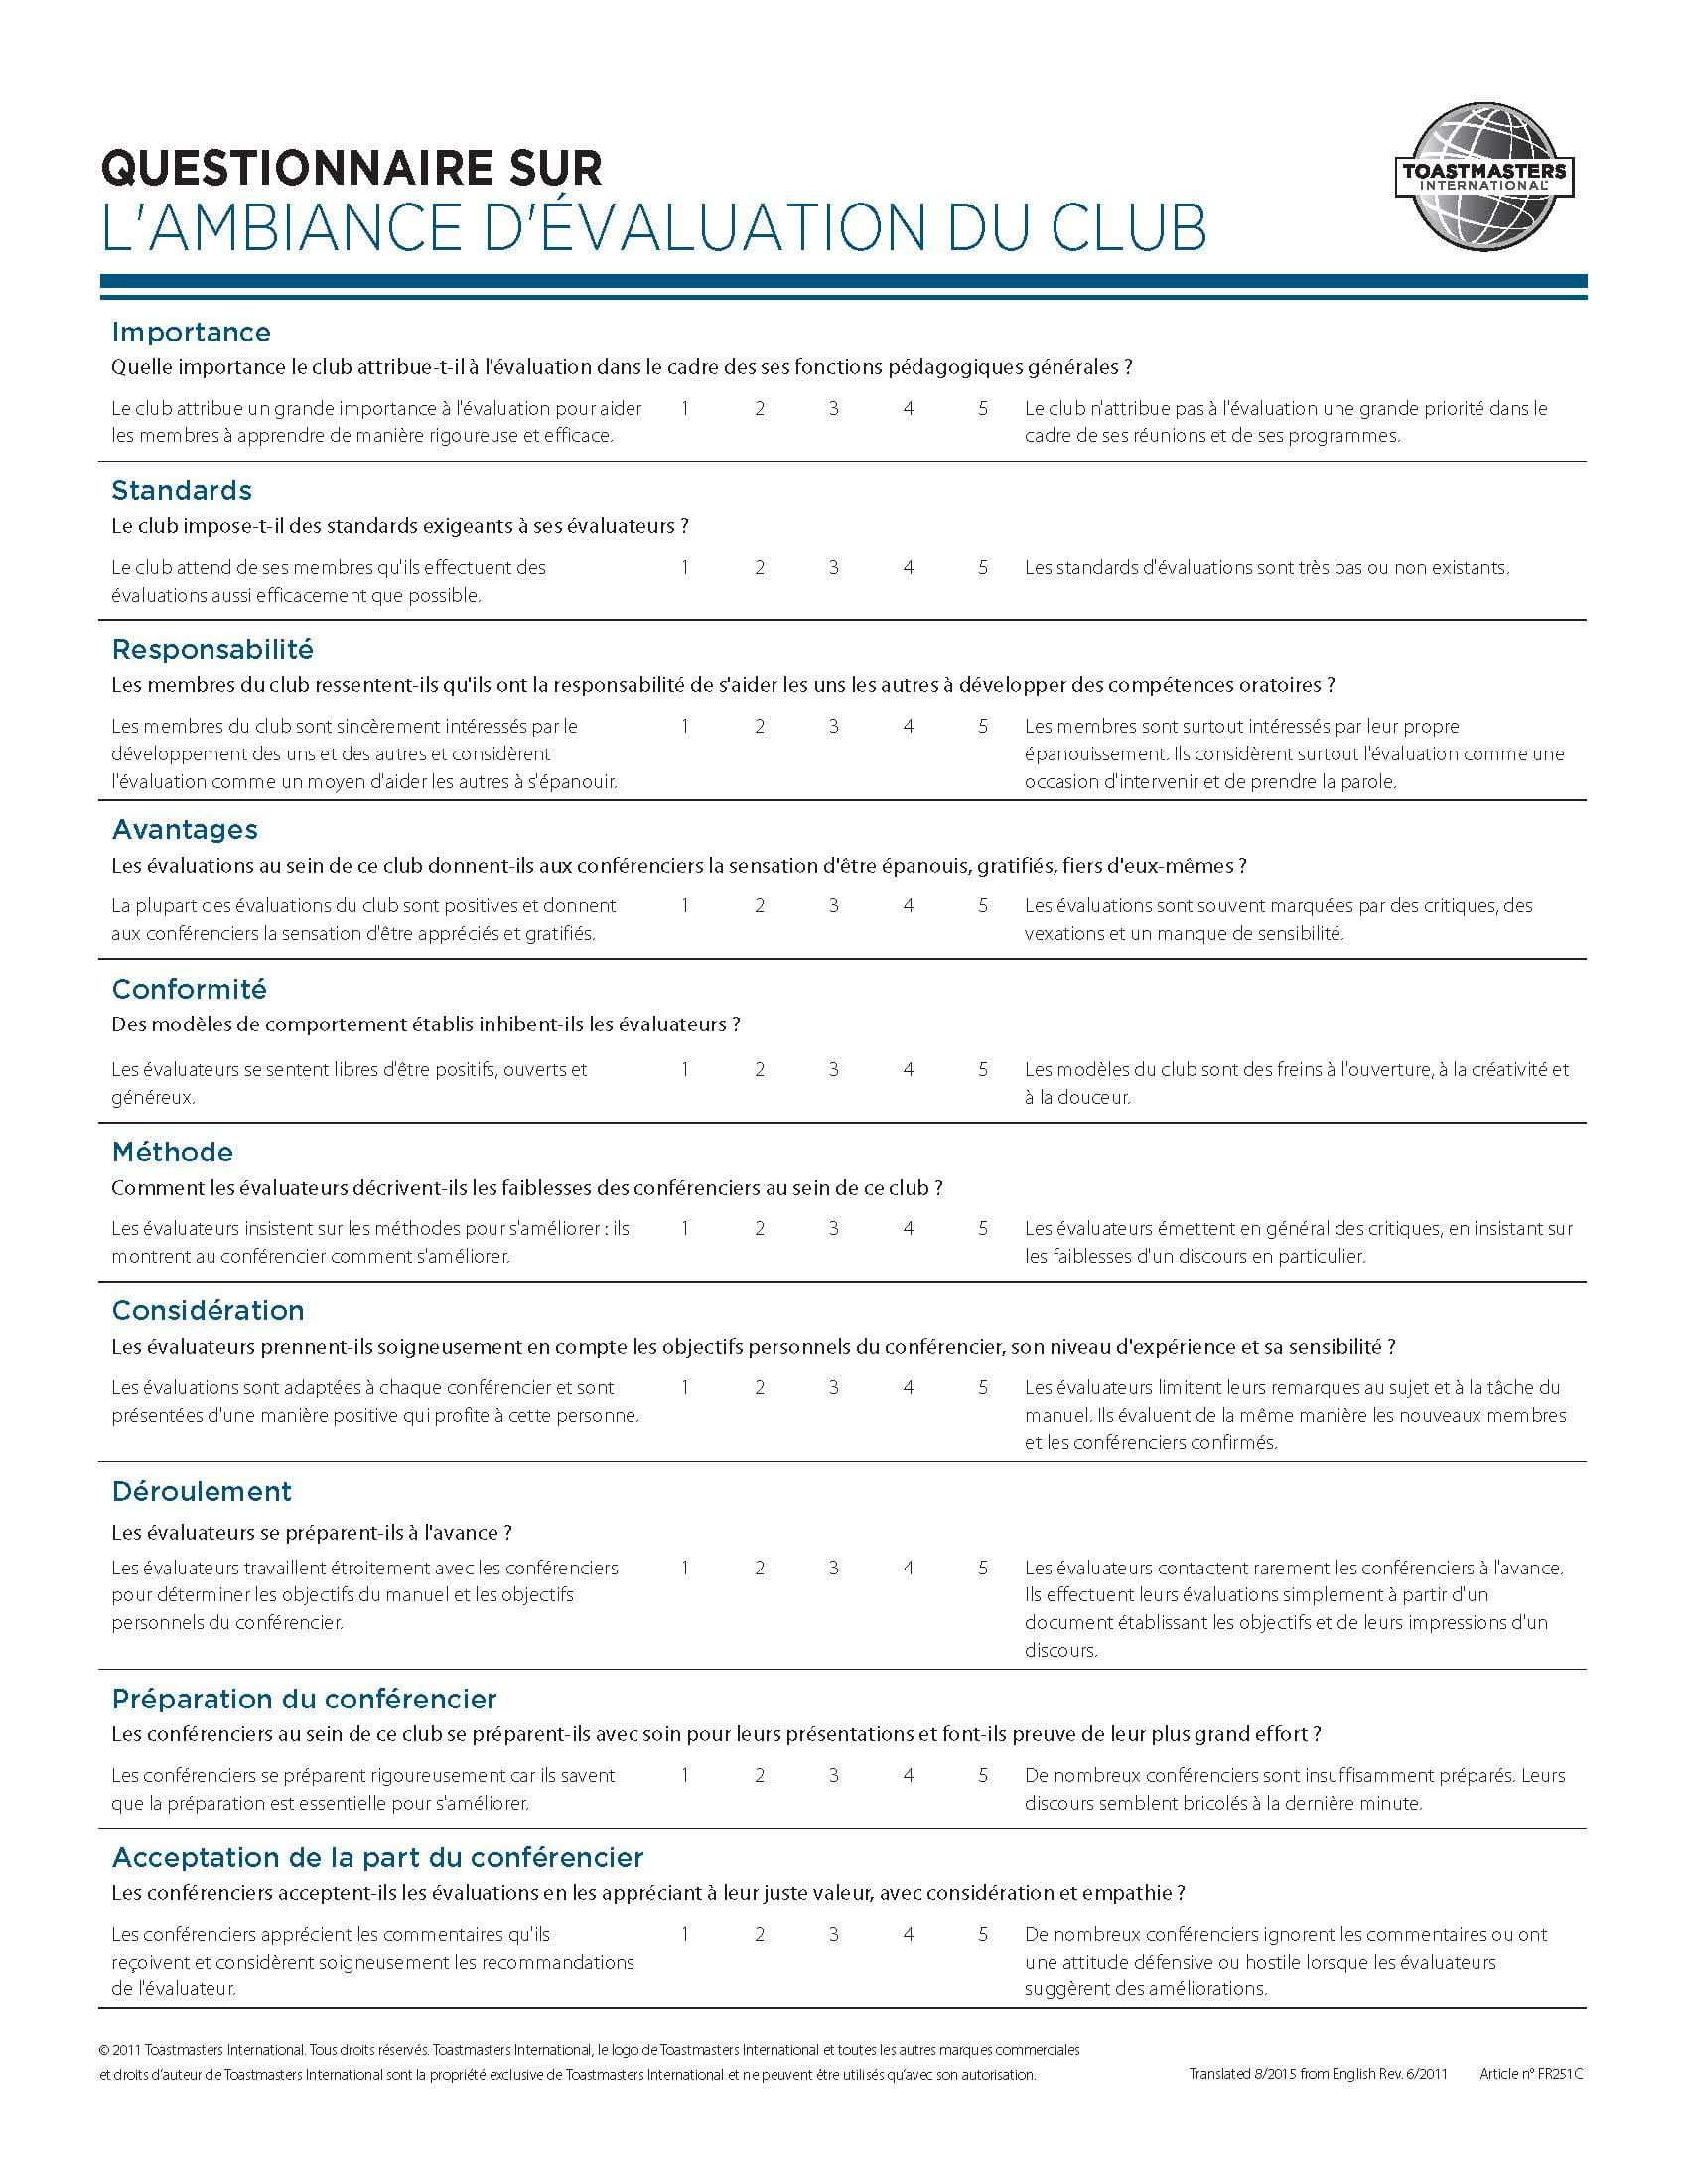 Club Climate Questionnaire (French)